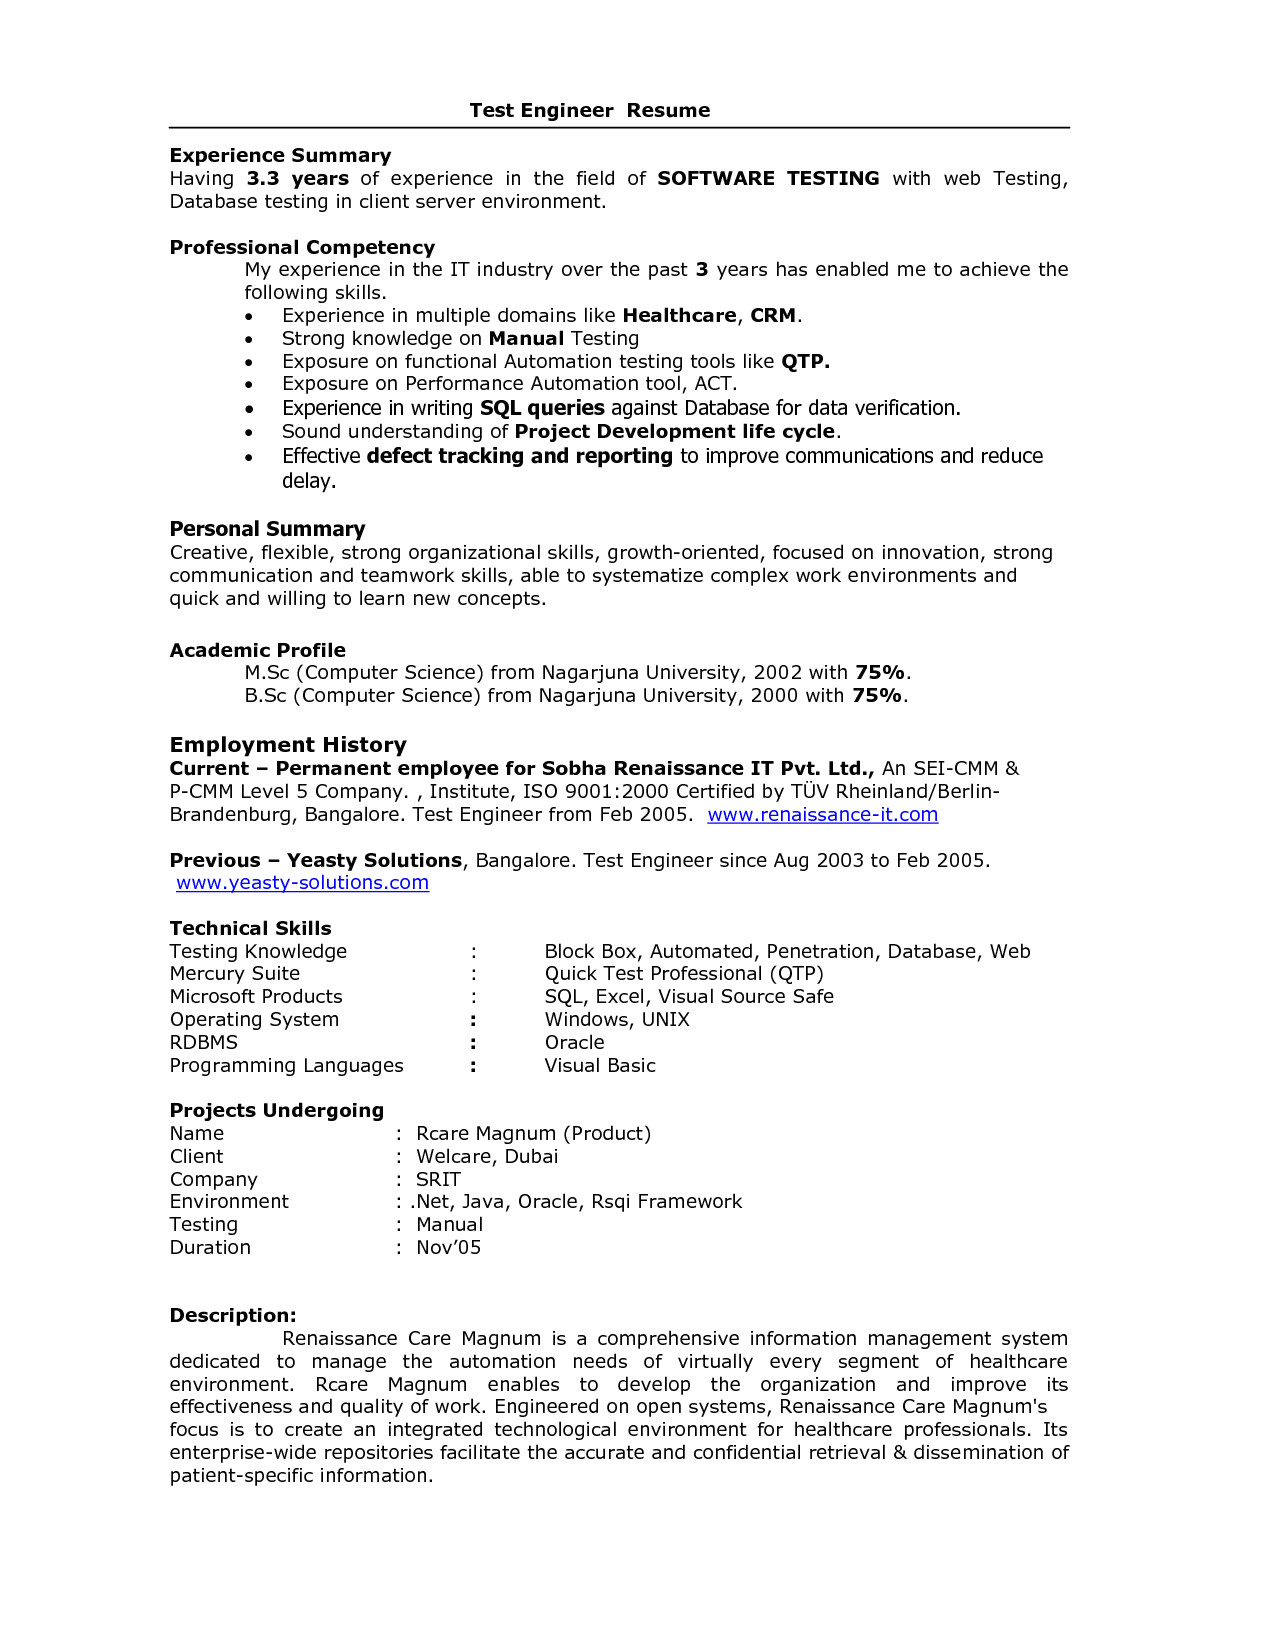 Sample Resume for 2 Years Experience In Manual Testing software Testing Resume Samples 2 Years Experience